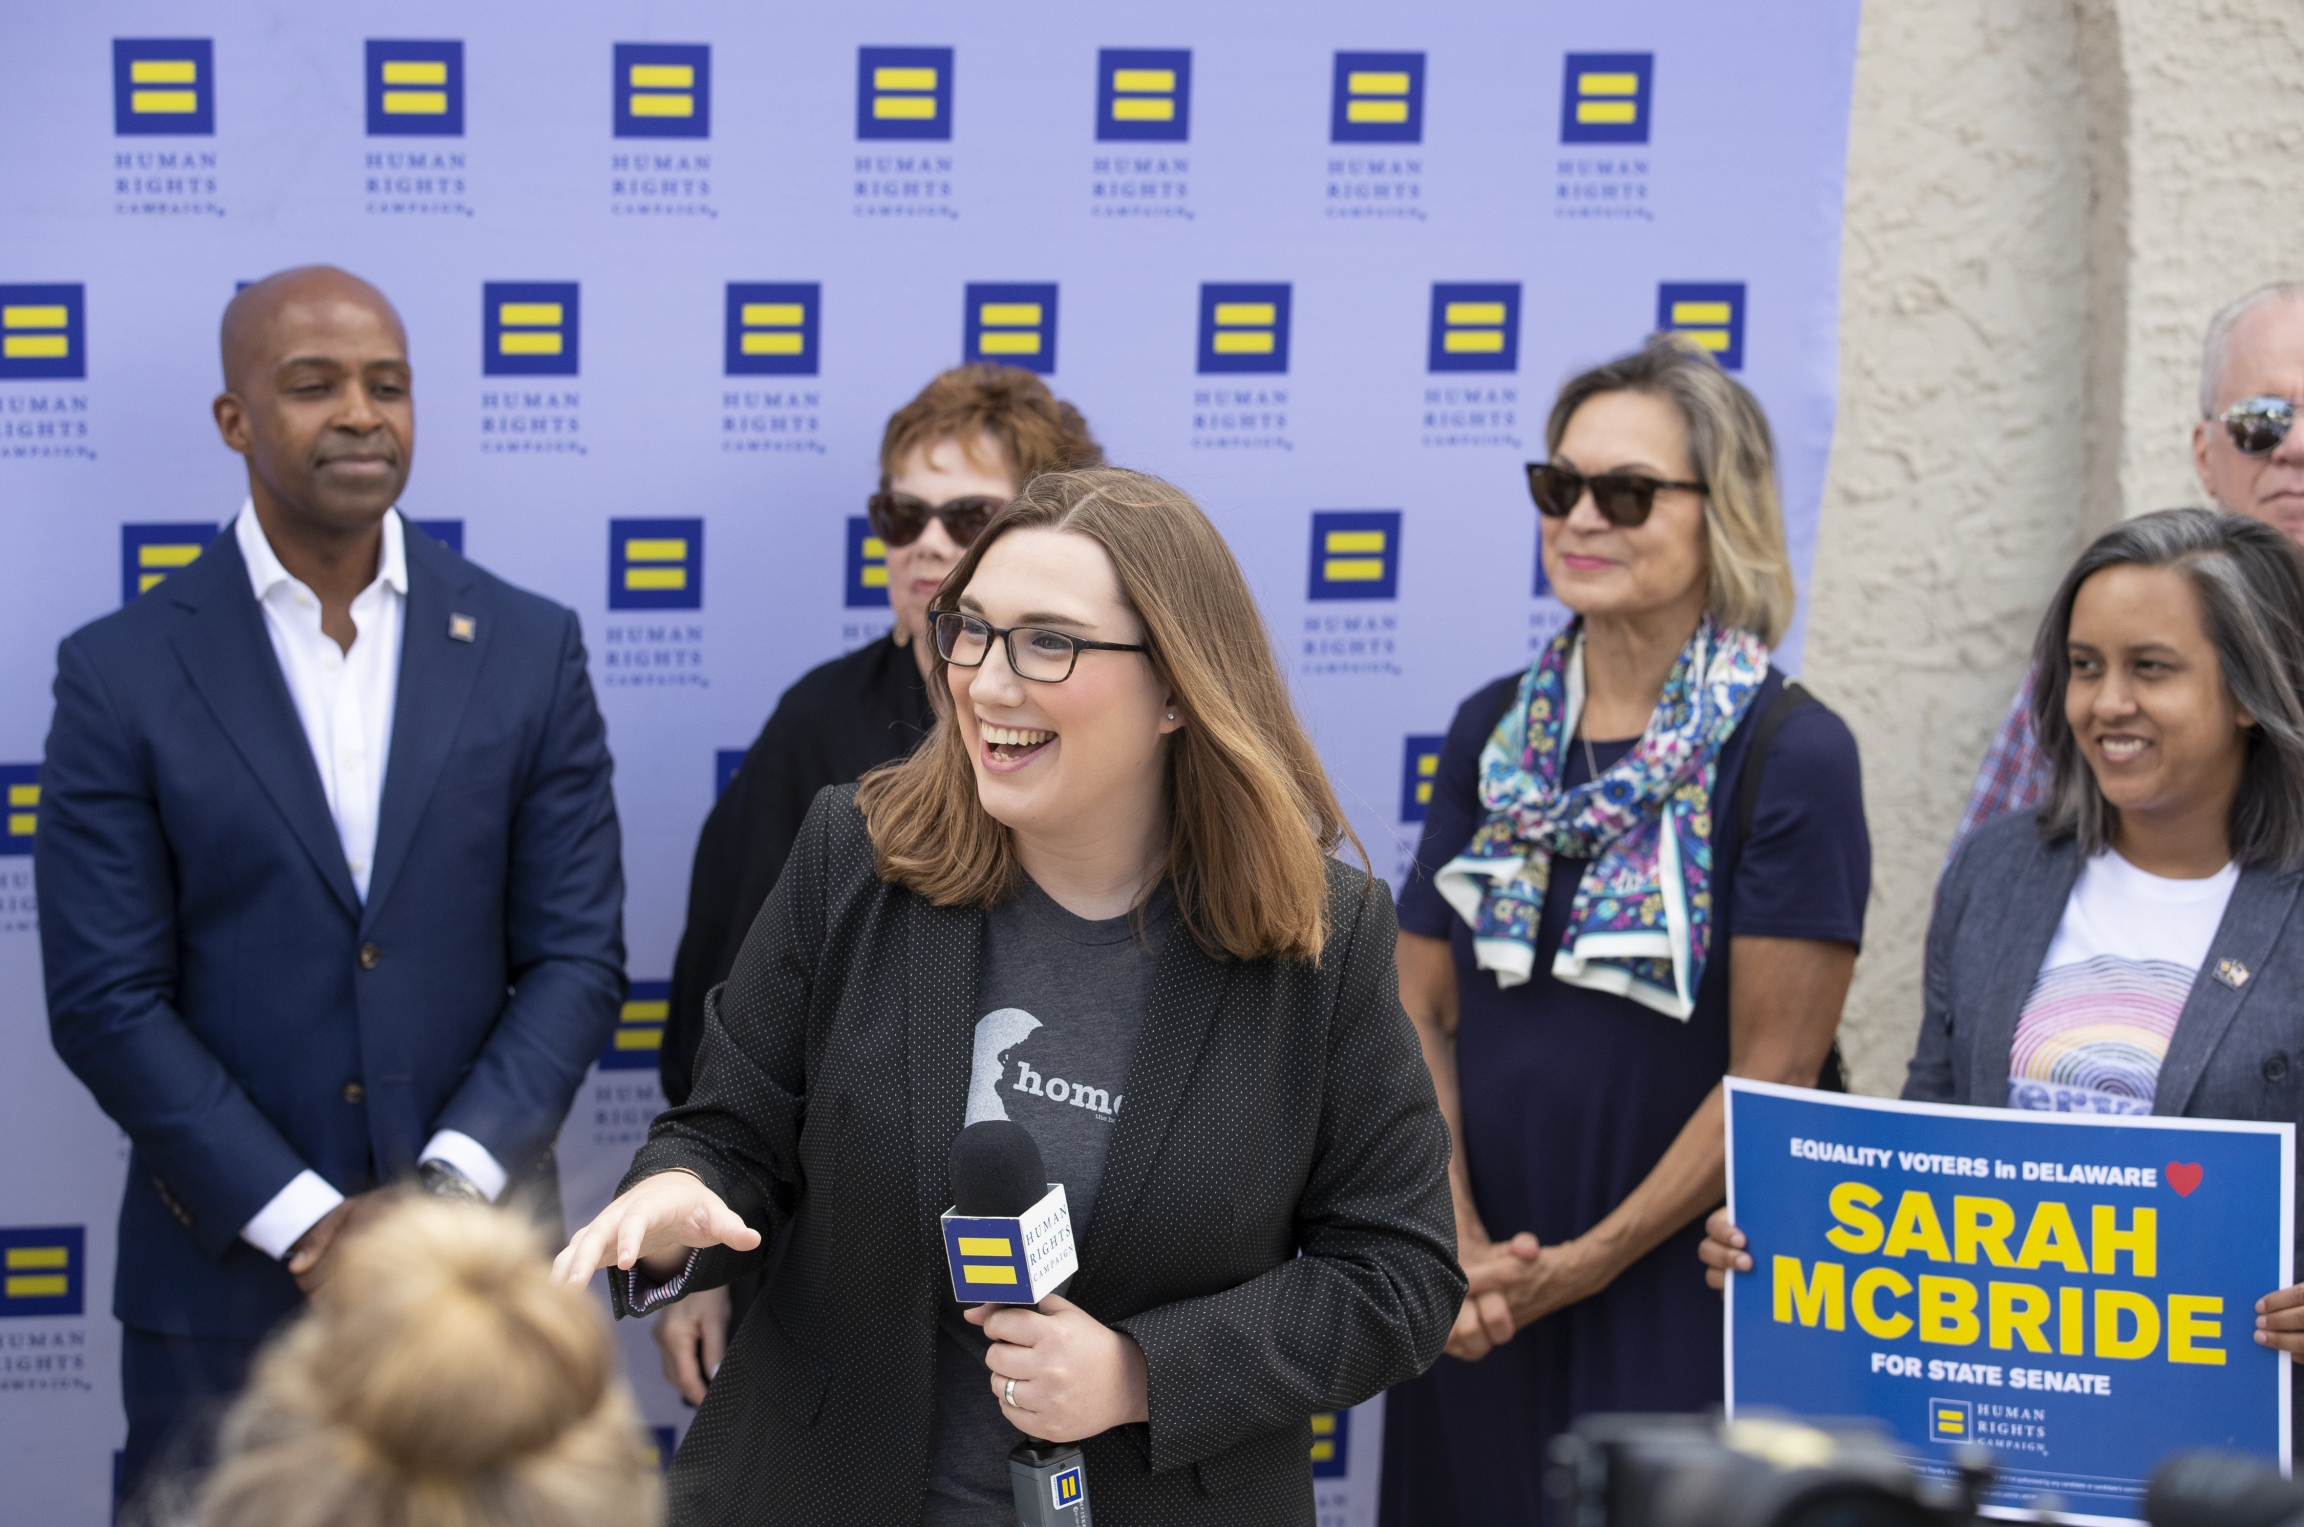 Sarah McBride, then a candidate for Delaware state senate, speaks during an event that announced her endorsement by the Human Rights Campaign in Wilmington, Delaware, Aug. 25, 2019.